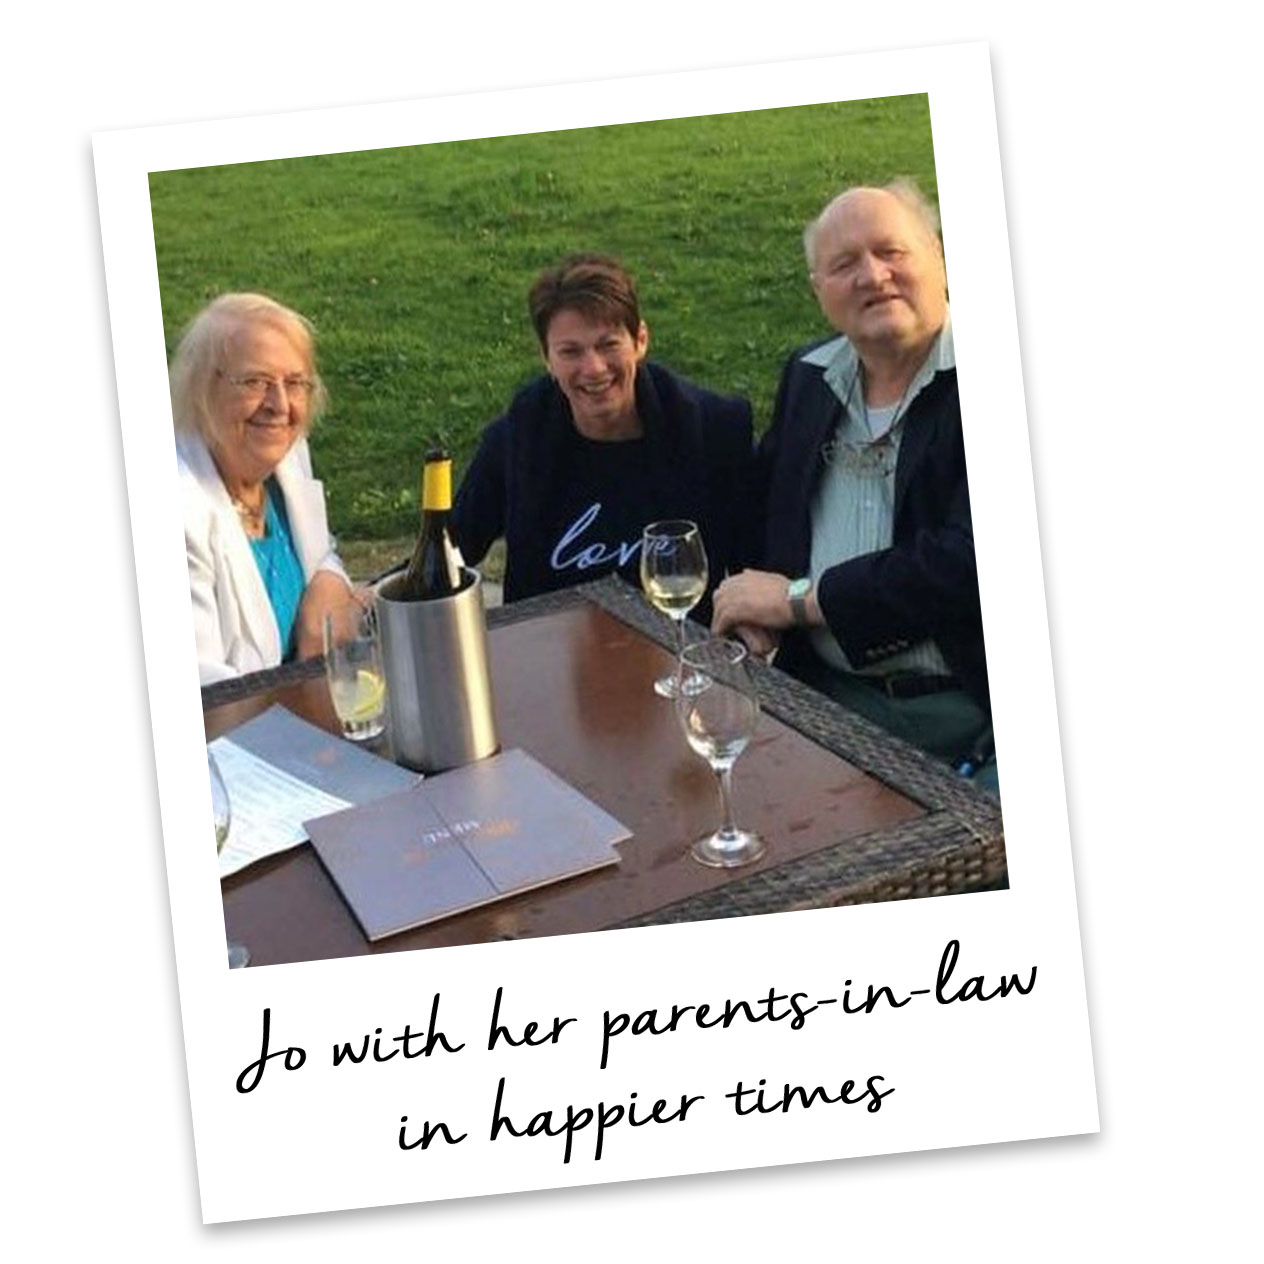 Jo with her parents-in-laws